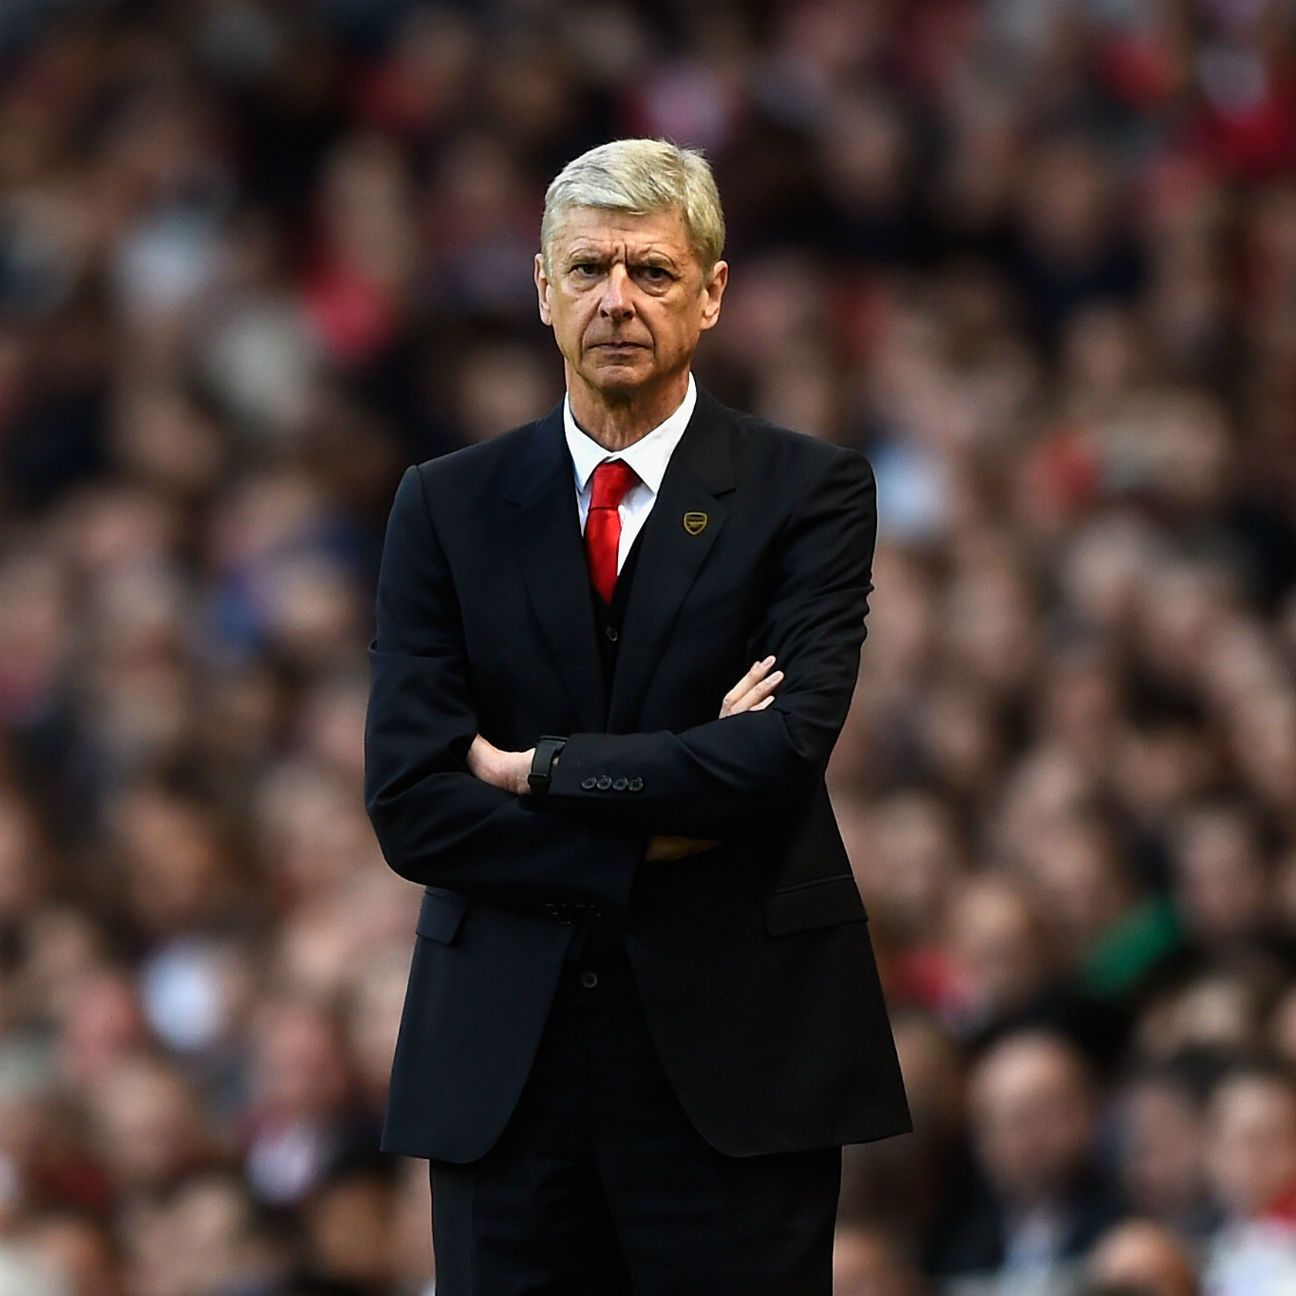 Arsene Wenger has been the picture of stability in nearly 20 years at Arsenal -- but also has his detractors.